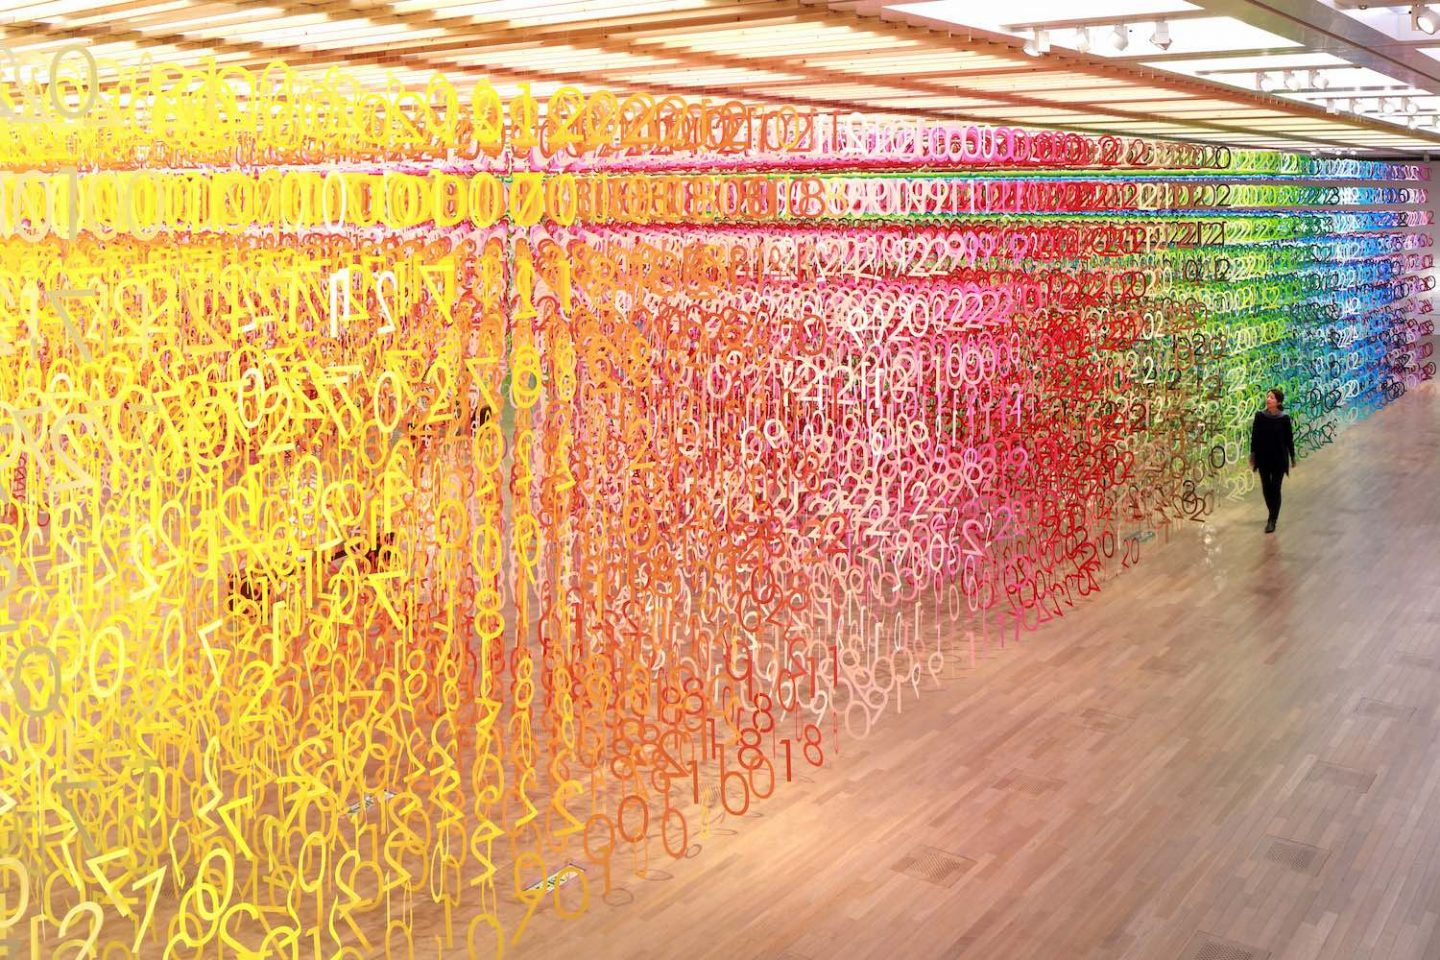 Art_Emmanuelle_Moureaux_Forest_Of_Numbers_02